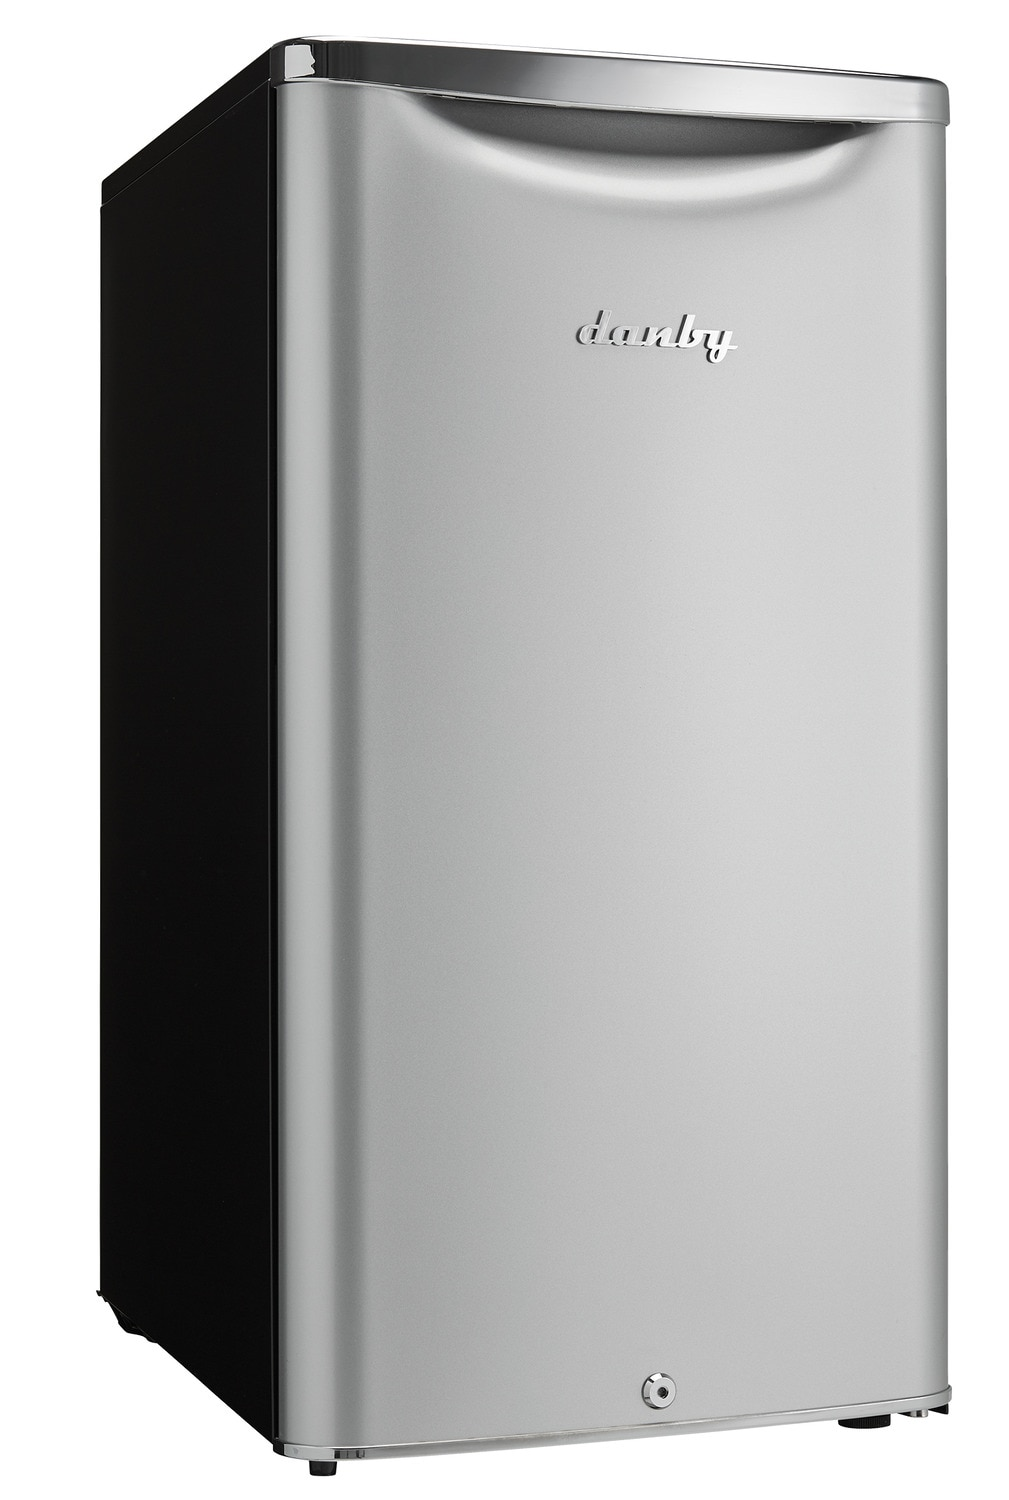 Refrigerators and Freezers - Danby Silver Compact Refrigerator (3.3 Cu. Ft.) - DAR033A6DDB